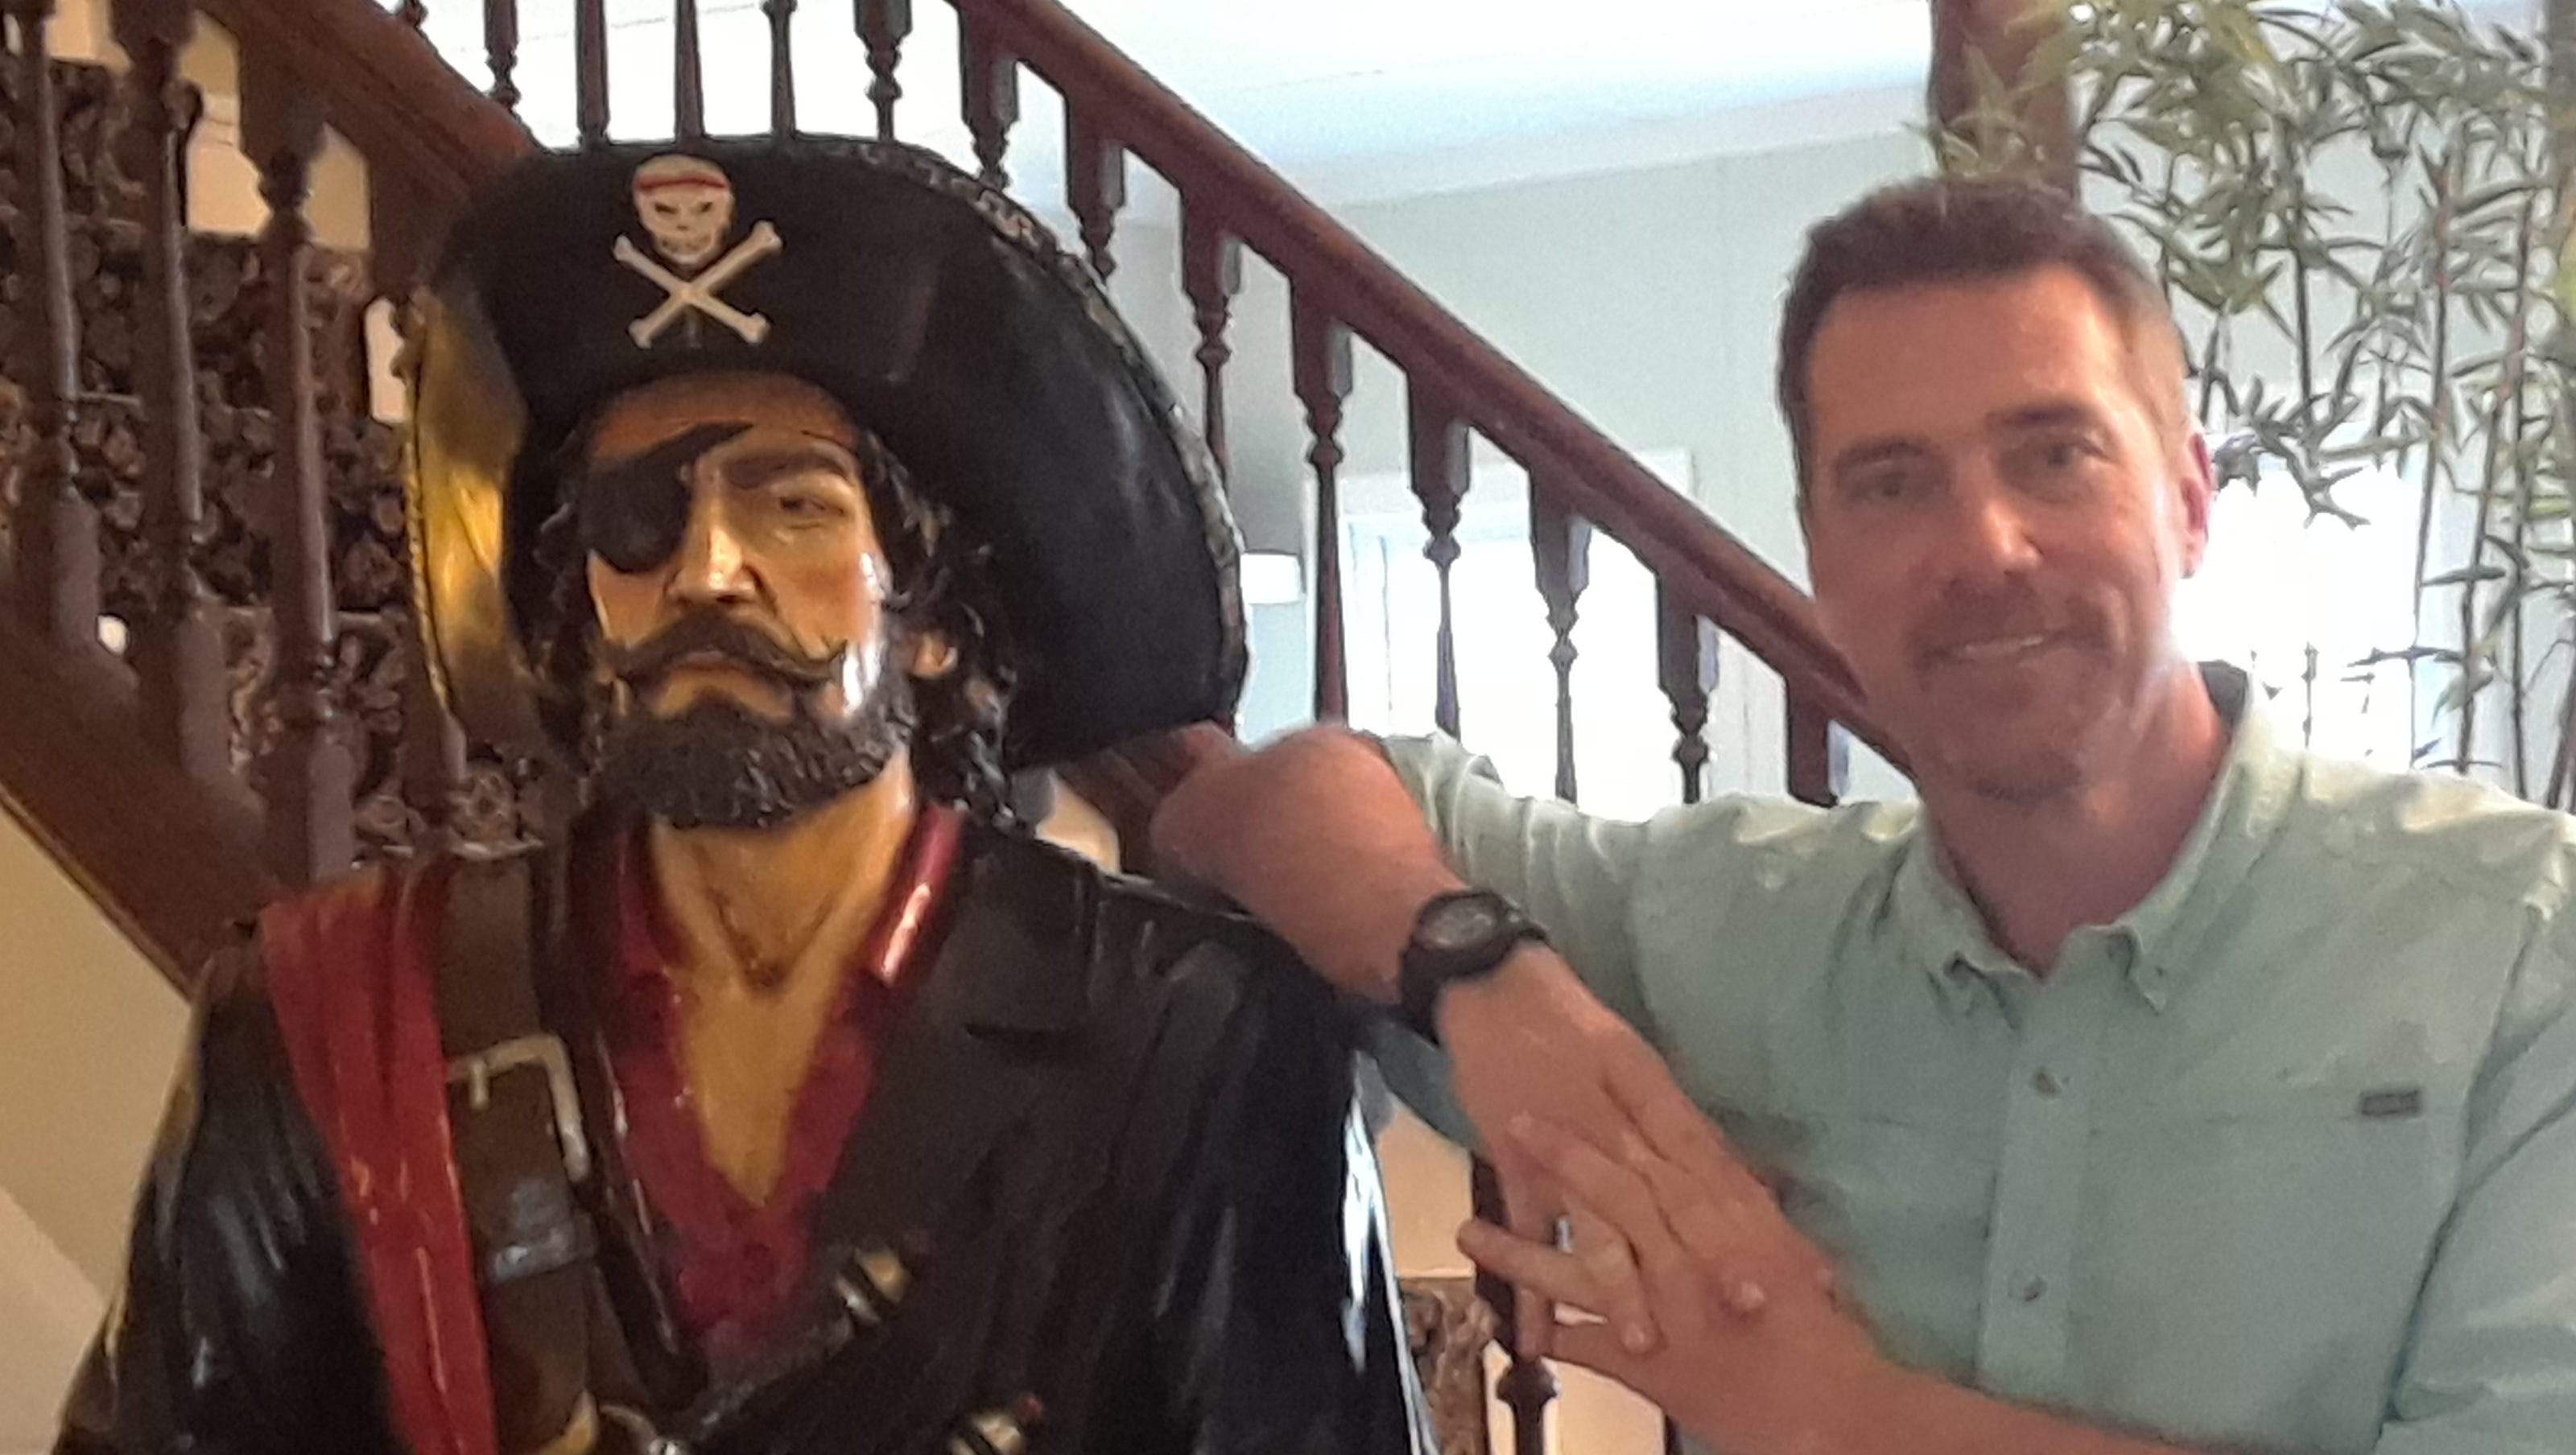 blackbeard in north carolina: famous pirate is now tourism draw